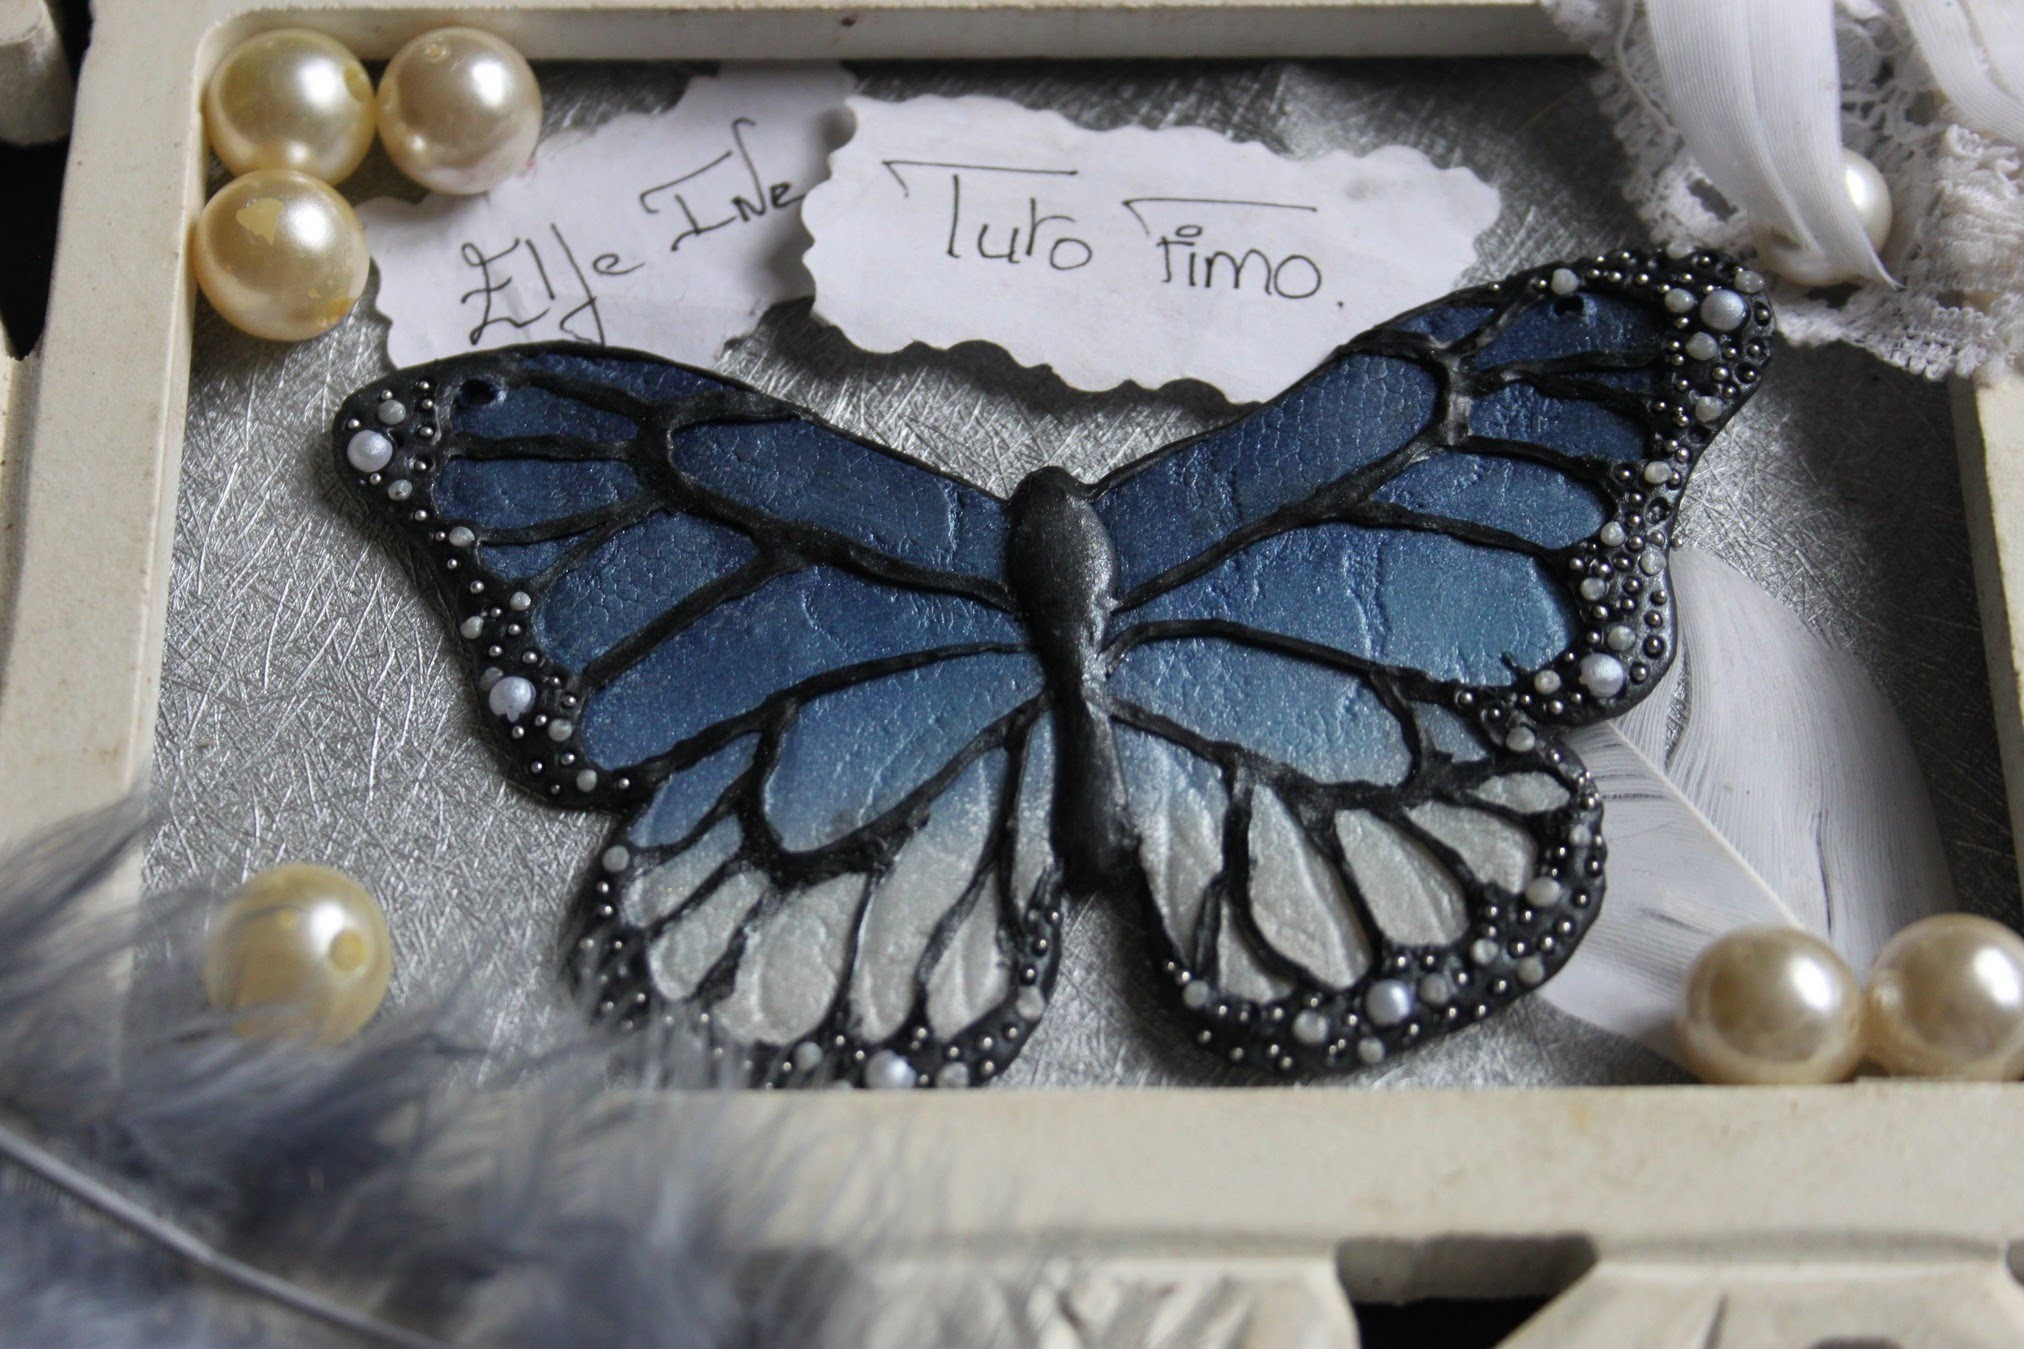 [♥✿ Tuto Fimo : Collier Papillon ✿♥] ~ [♥✿ Polymer Clay Tutorial : Butterfly Necklace ✿♥]